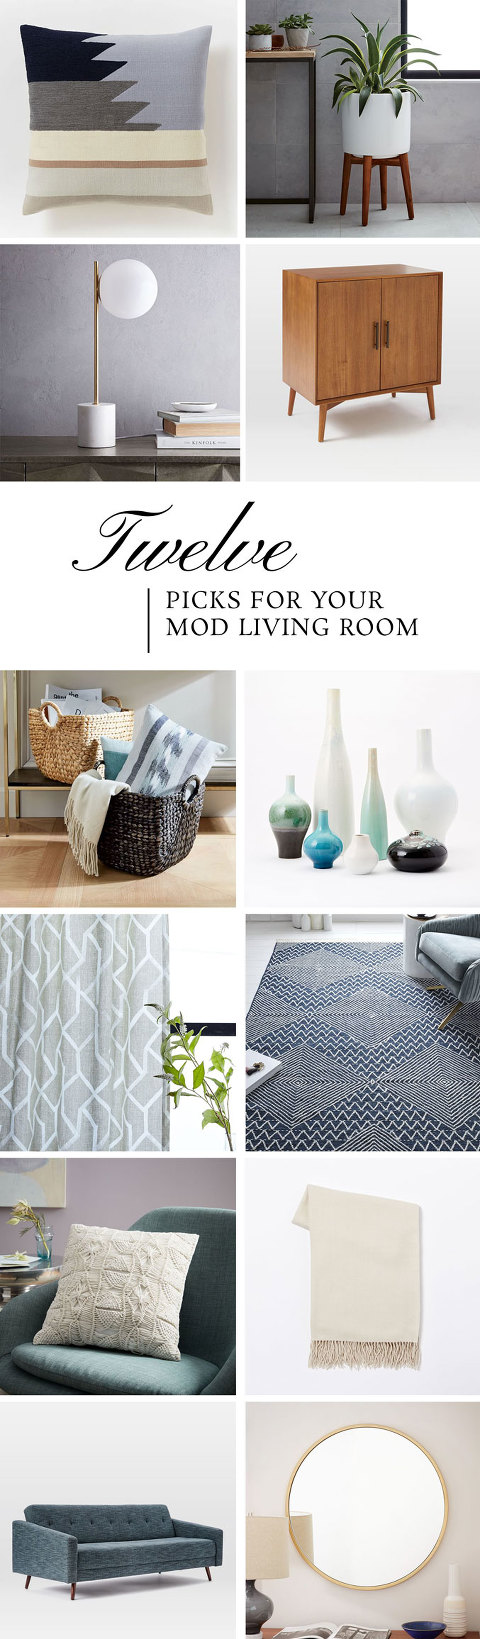 Everything You Need For Your Modern Living Room Makeover | dreamgreendiy.com